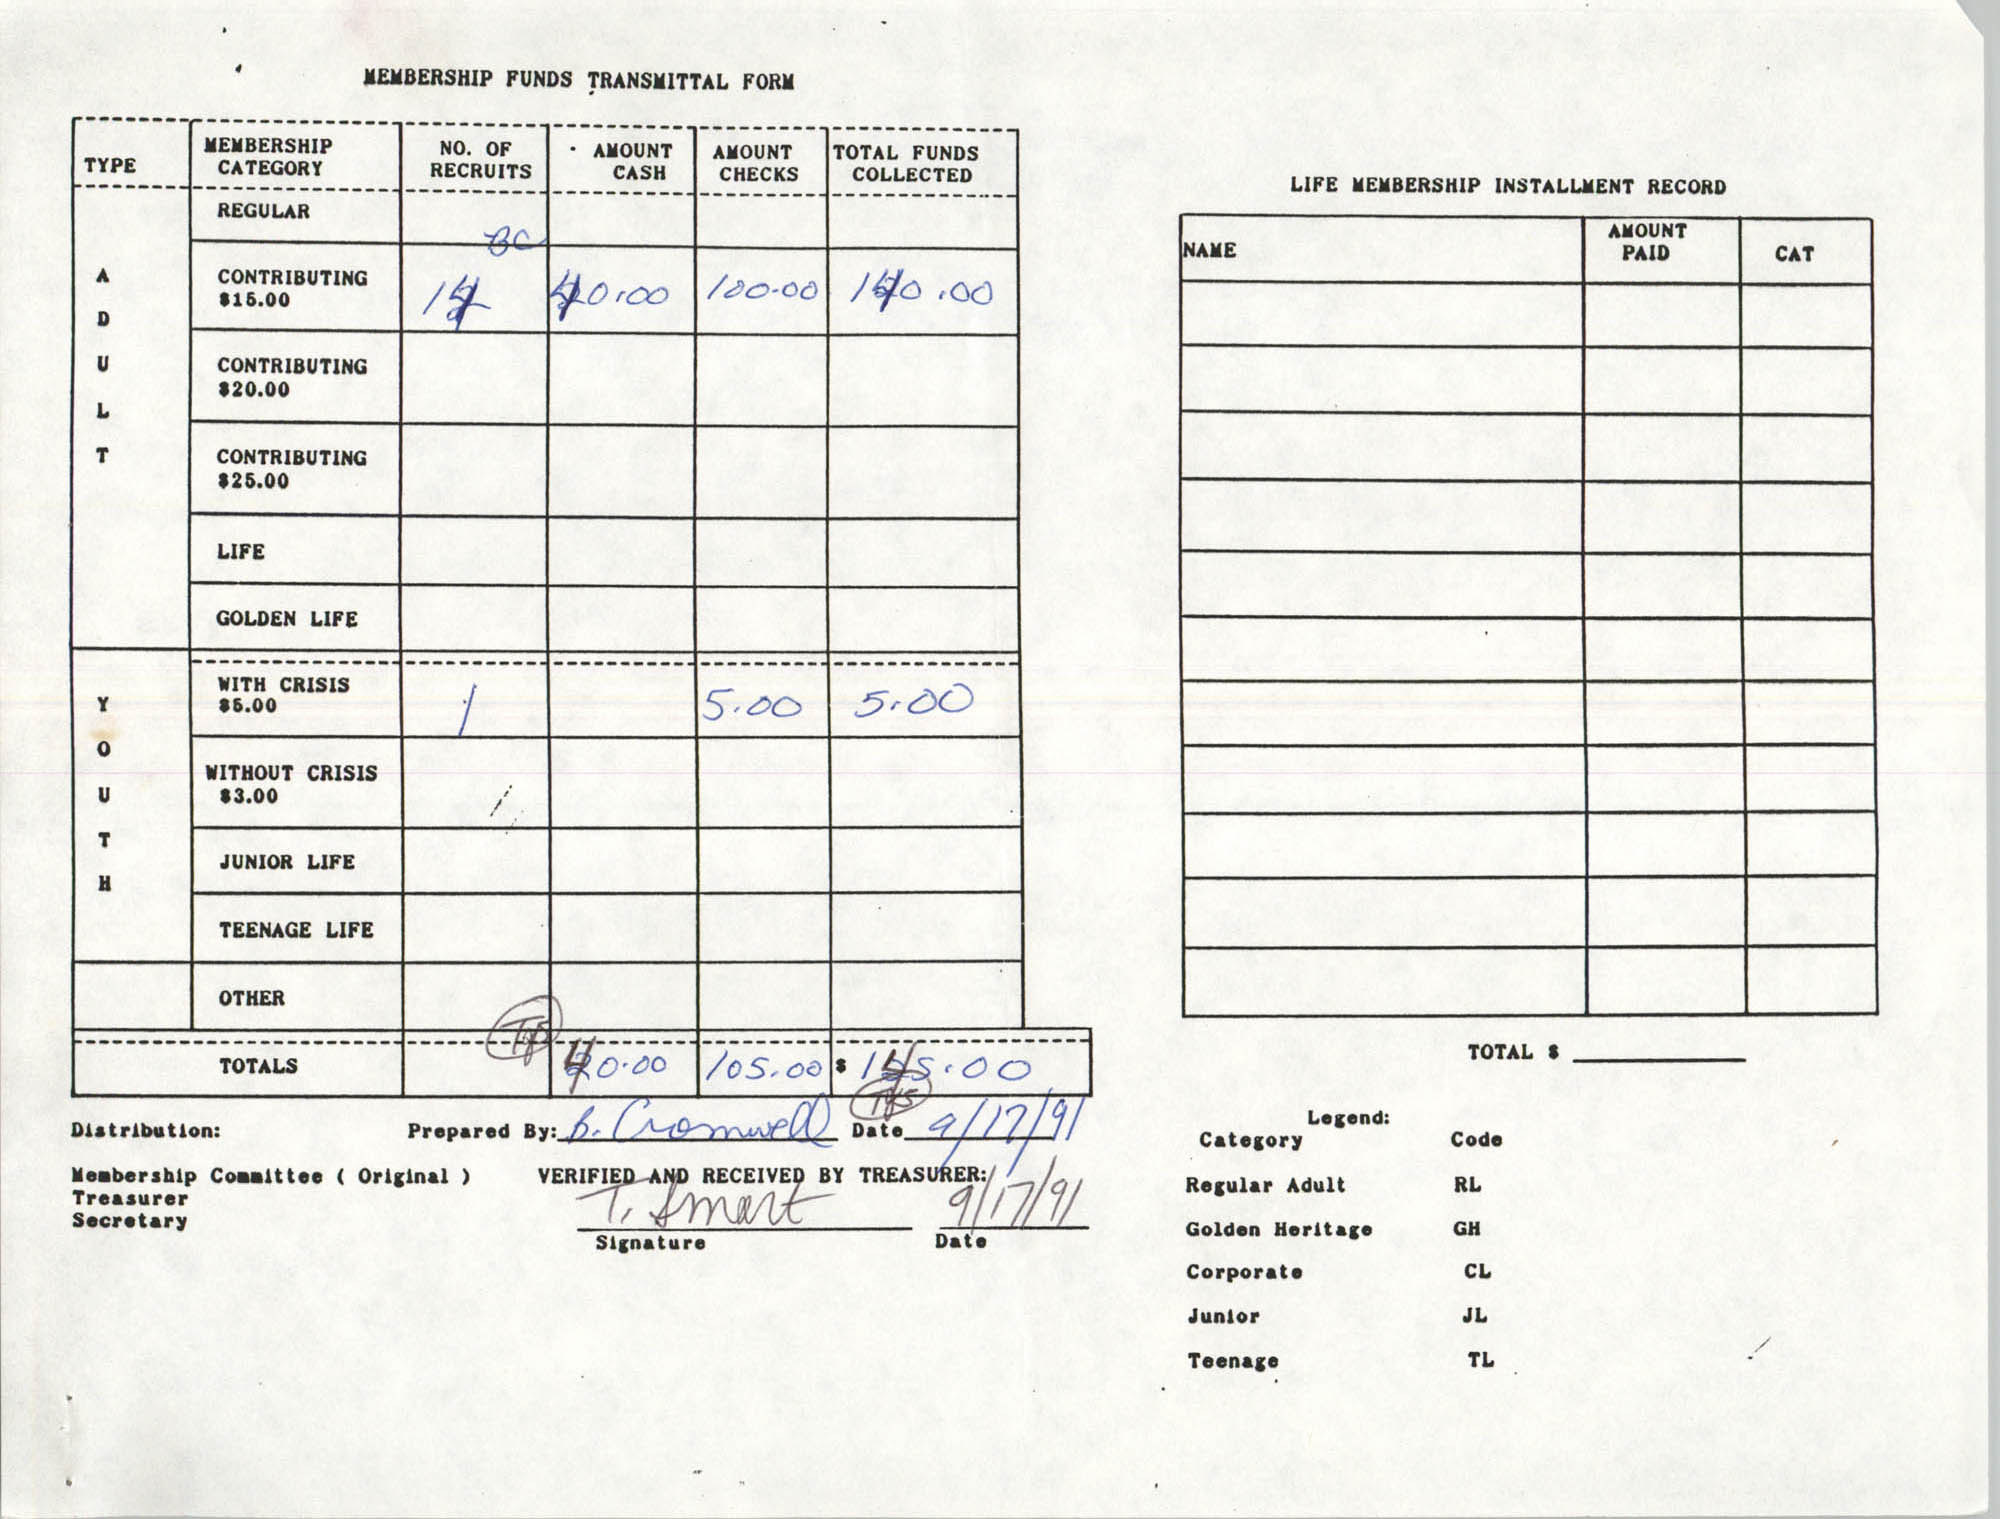 Charleston Branch of the NAACP Funds Transmittal Forms, September 1991, Page 36